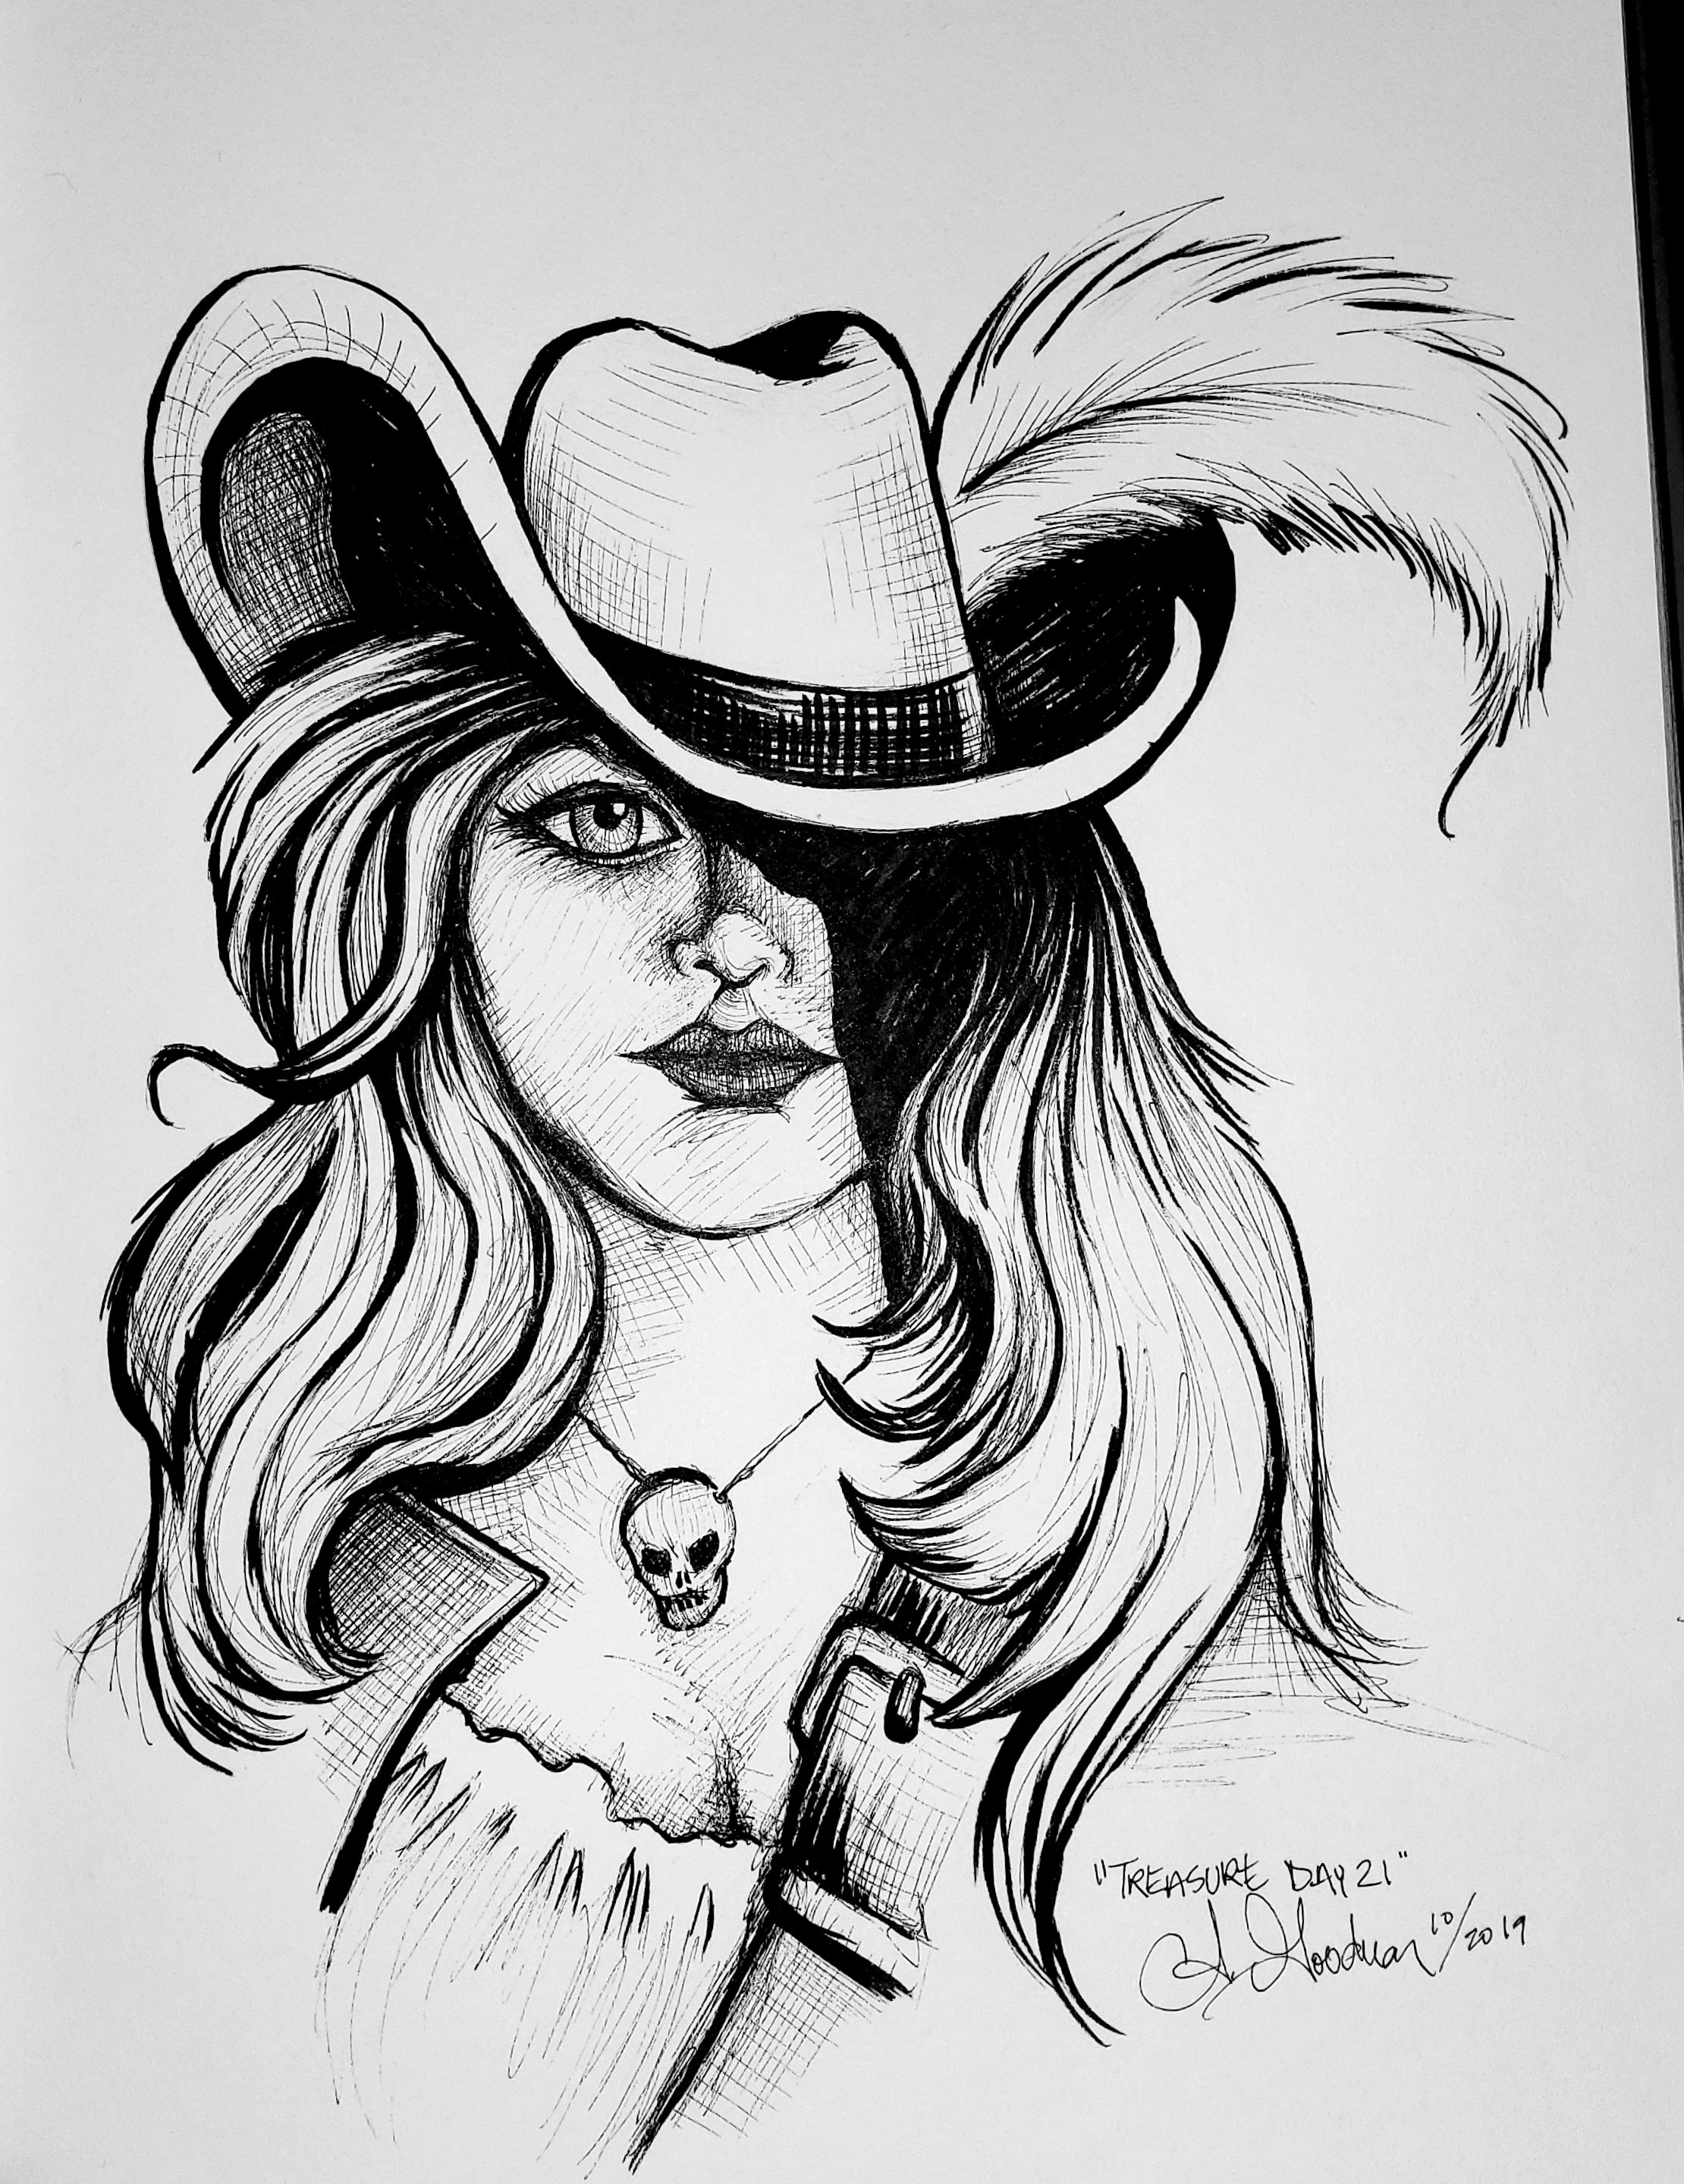 Ink drawing of pirate woman by Alecia Goodman